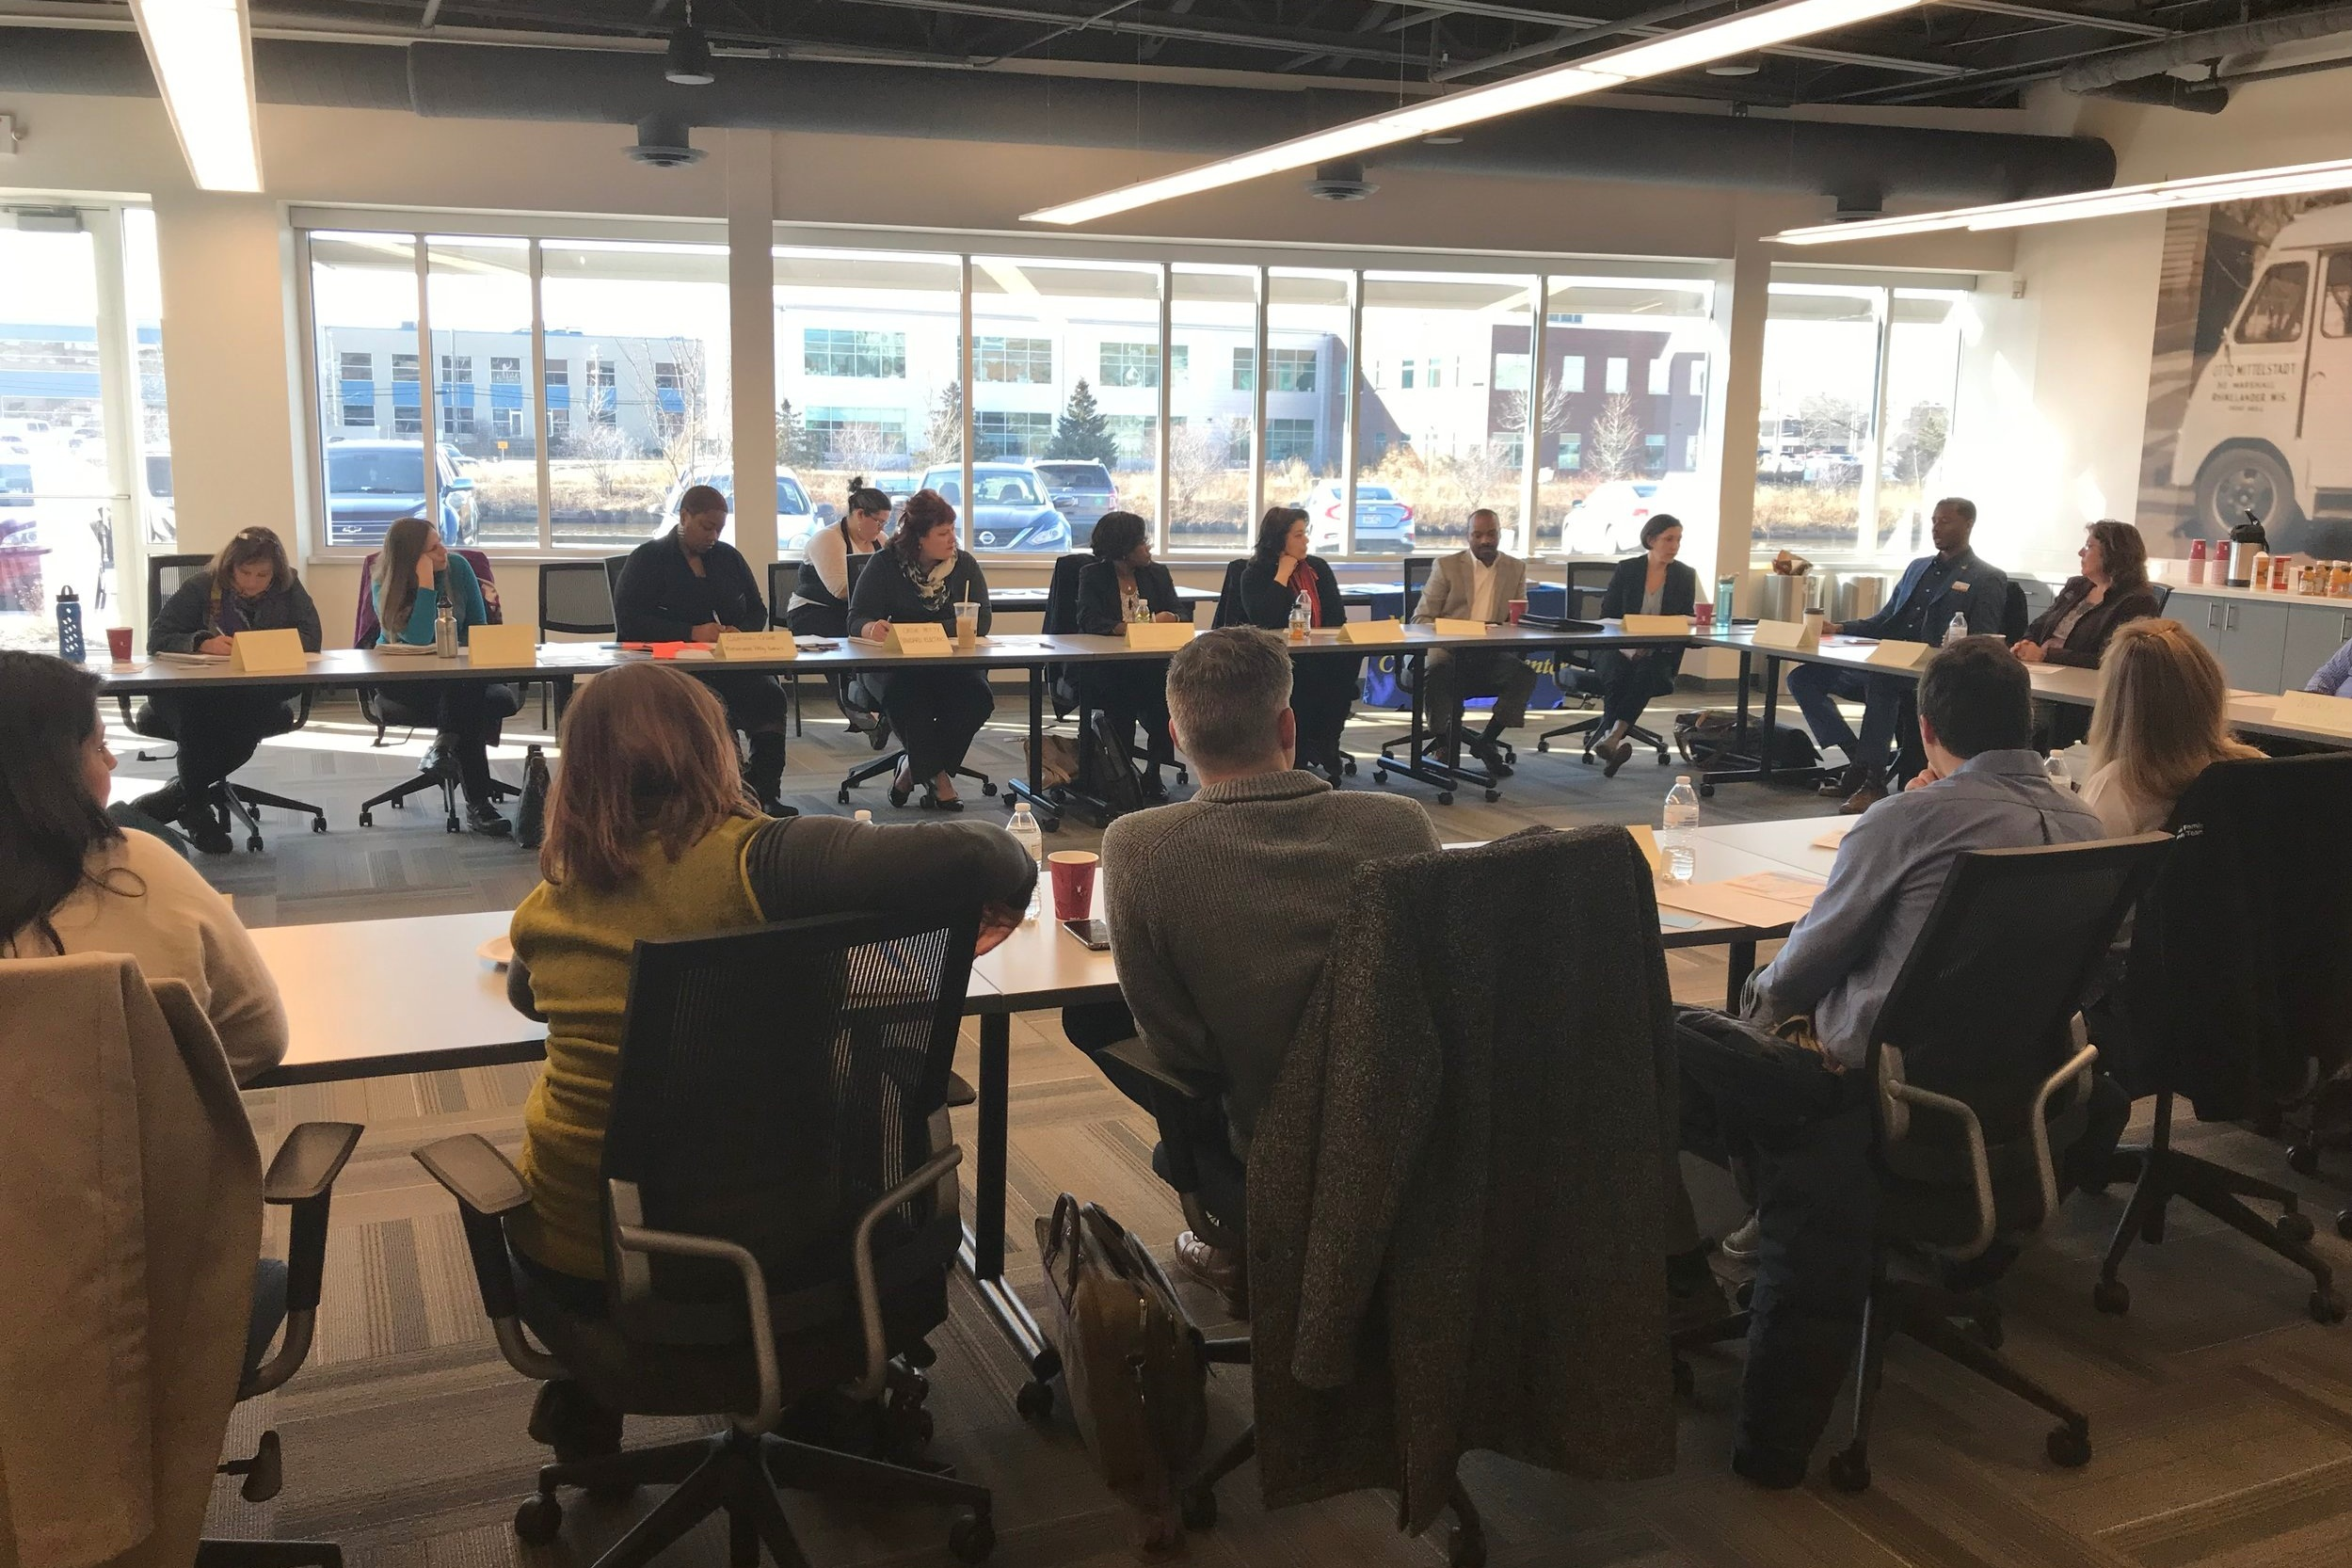 - Businesses and employees network with one another through the Menomonee Valley Business Association and Valley Circles, professional development groups where peers connect to discuss meaningful topics.